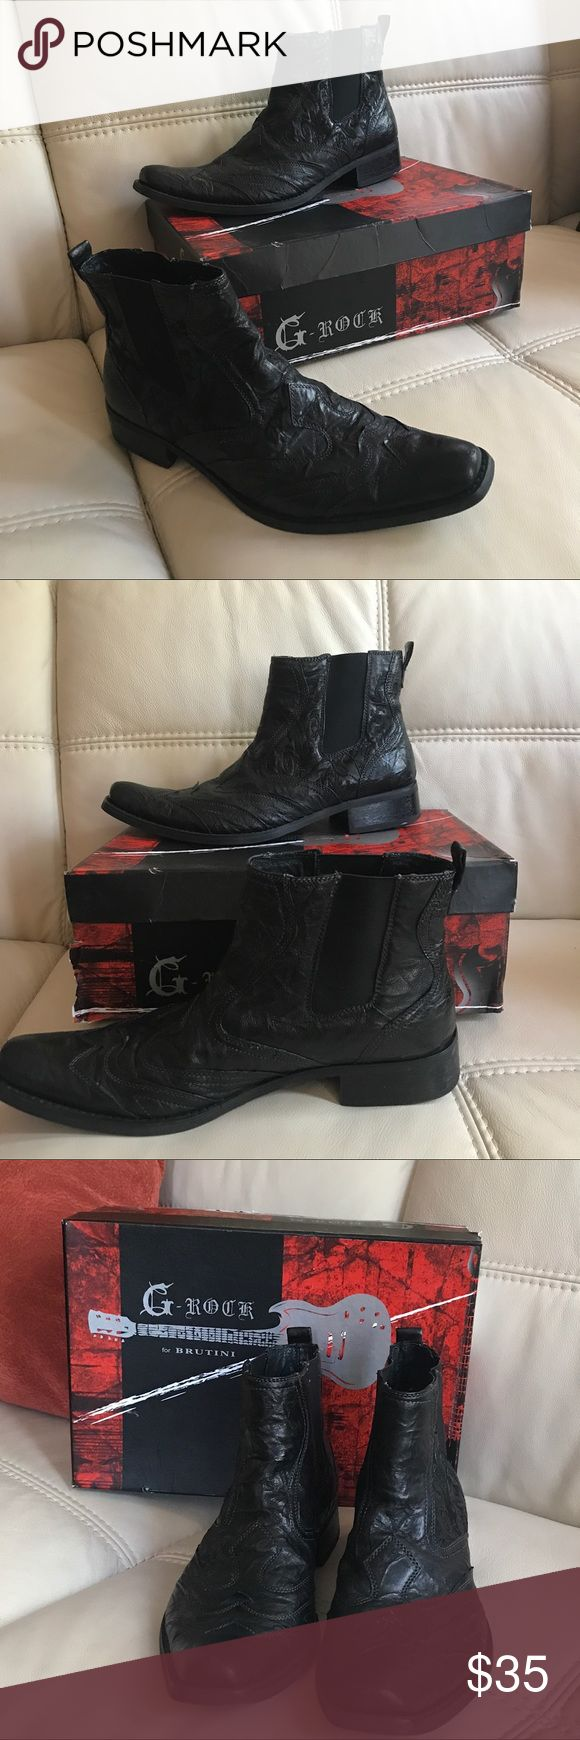 G-Rock for Brutini Ankle Boots About This Item:  GIORGIO BRUTINI G-Rock Black Leather Rockabilly Ankle Boots Men's - 9M  Guaranteed authentic. Please see pictures for complete description Giorgio Brutini Shoes Boots